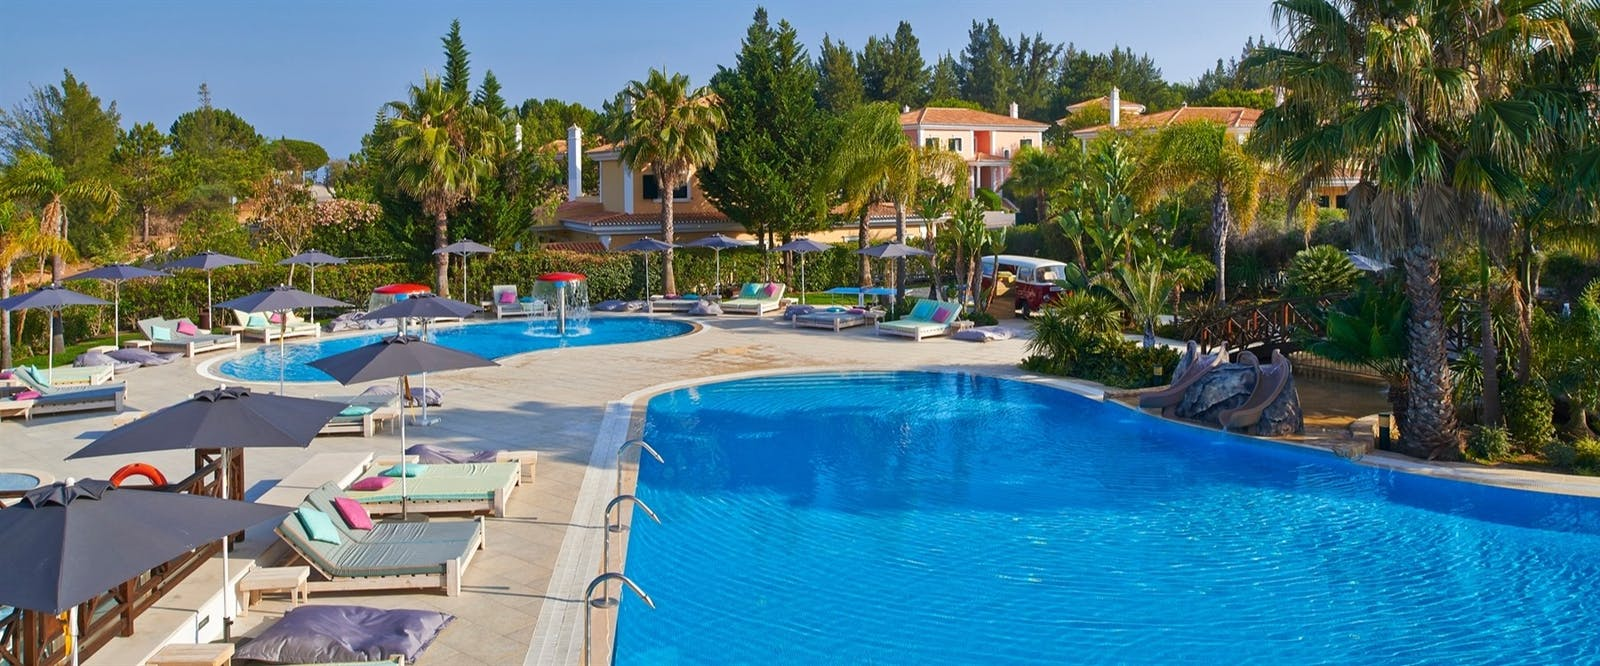 Pool Hangout at Martinhal Quinta Family Resort, Algarve